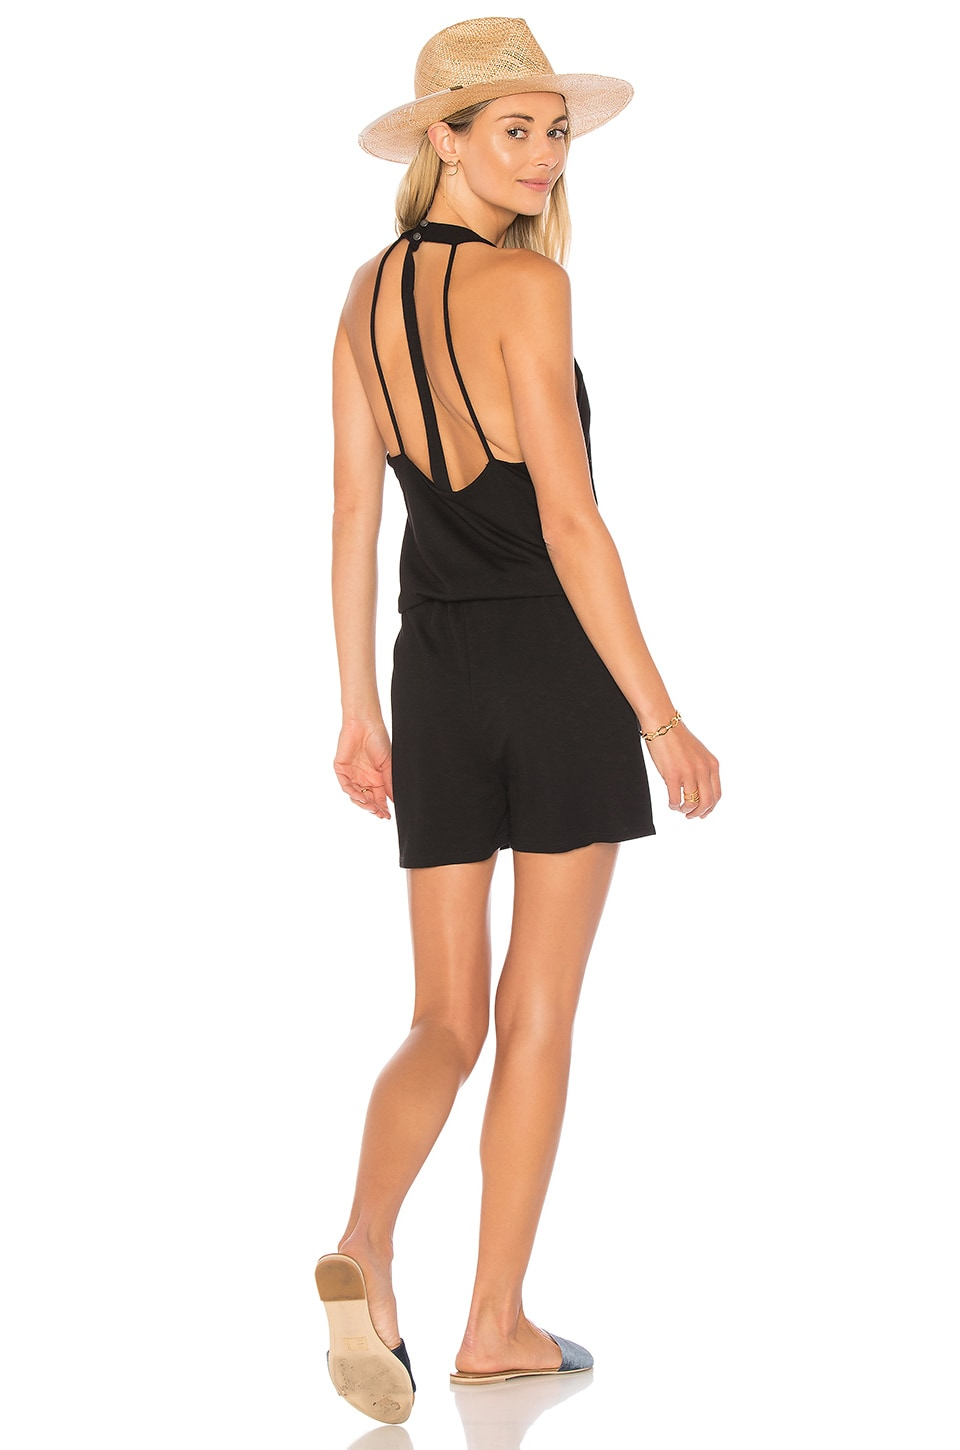 Strap Back Romper by Lanston